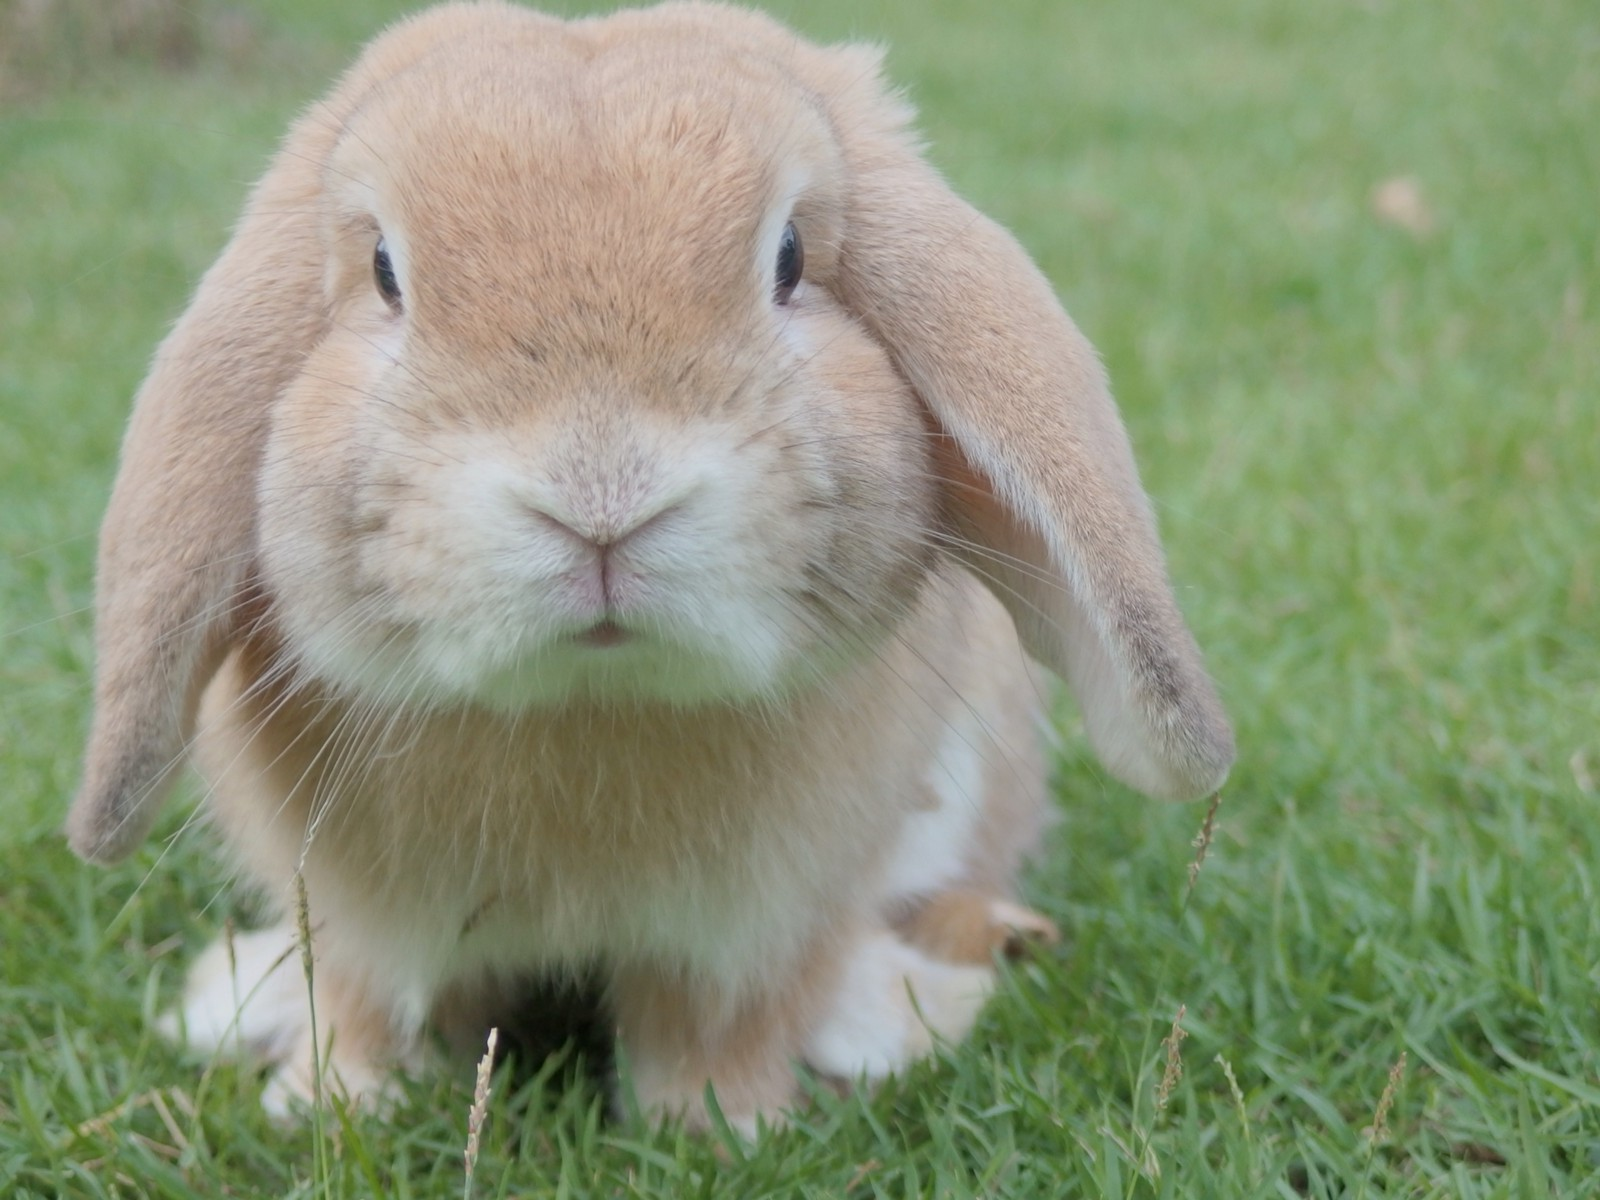 a little story about a rabbit that will teach you about life